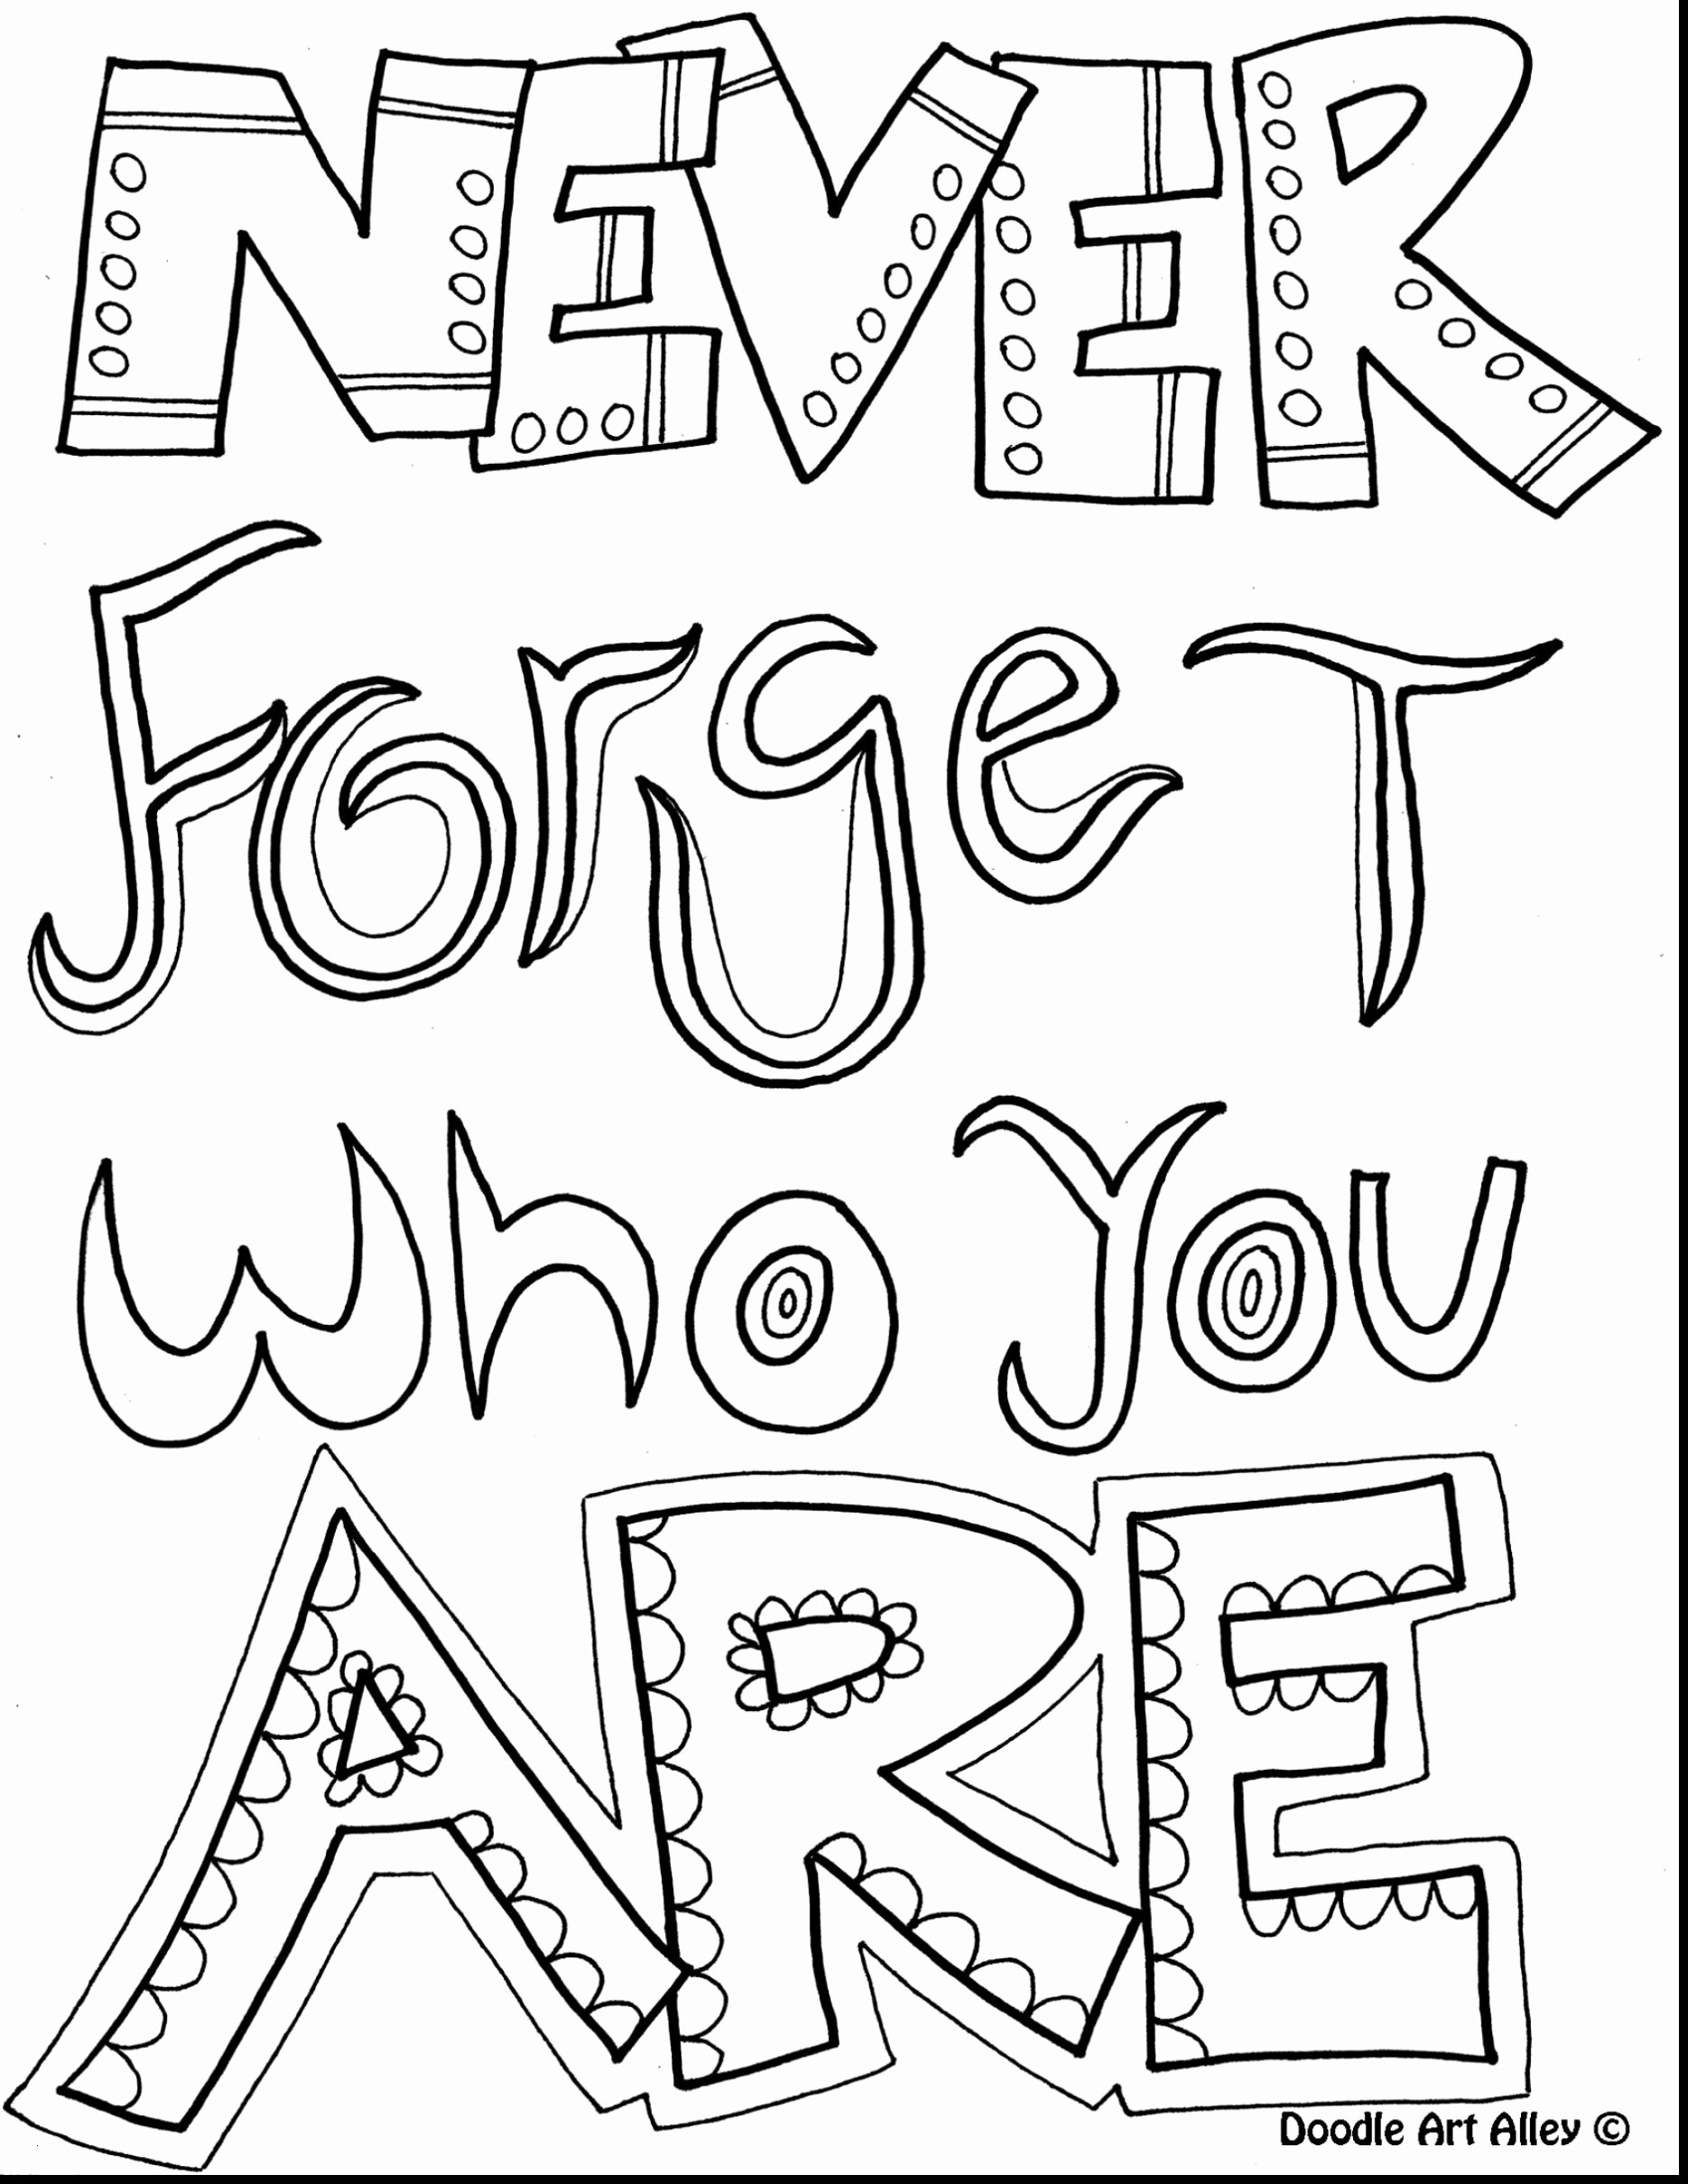 image regarding Printable Inspirational Coloring Pages named 23 Printable Inspirational Offers Coloring Web pages Gallery